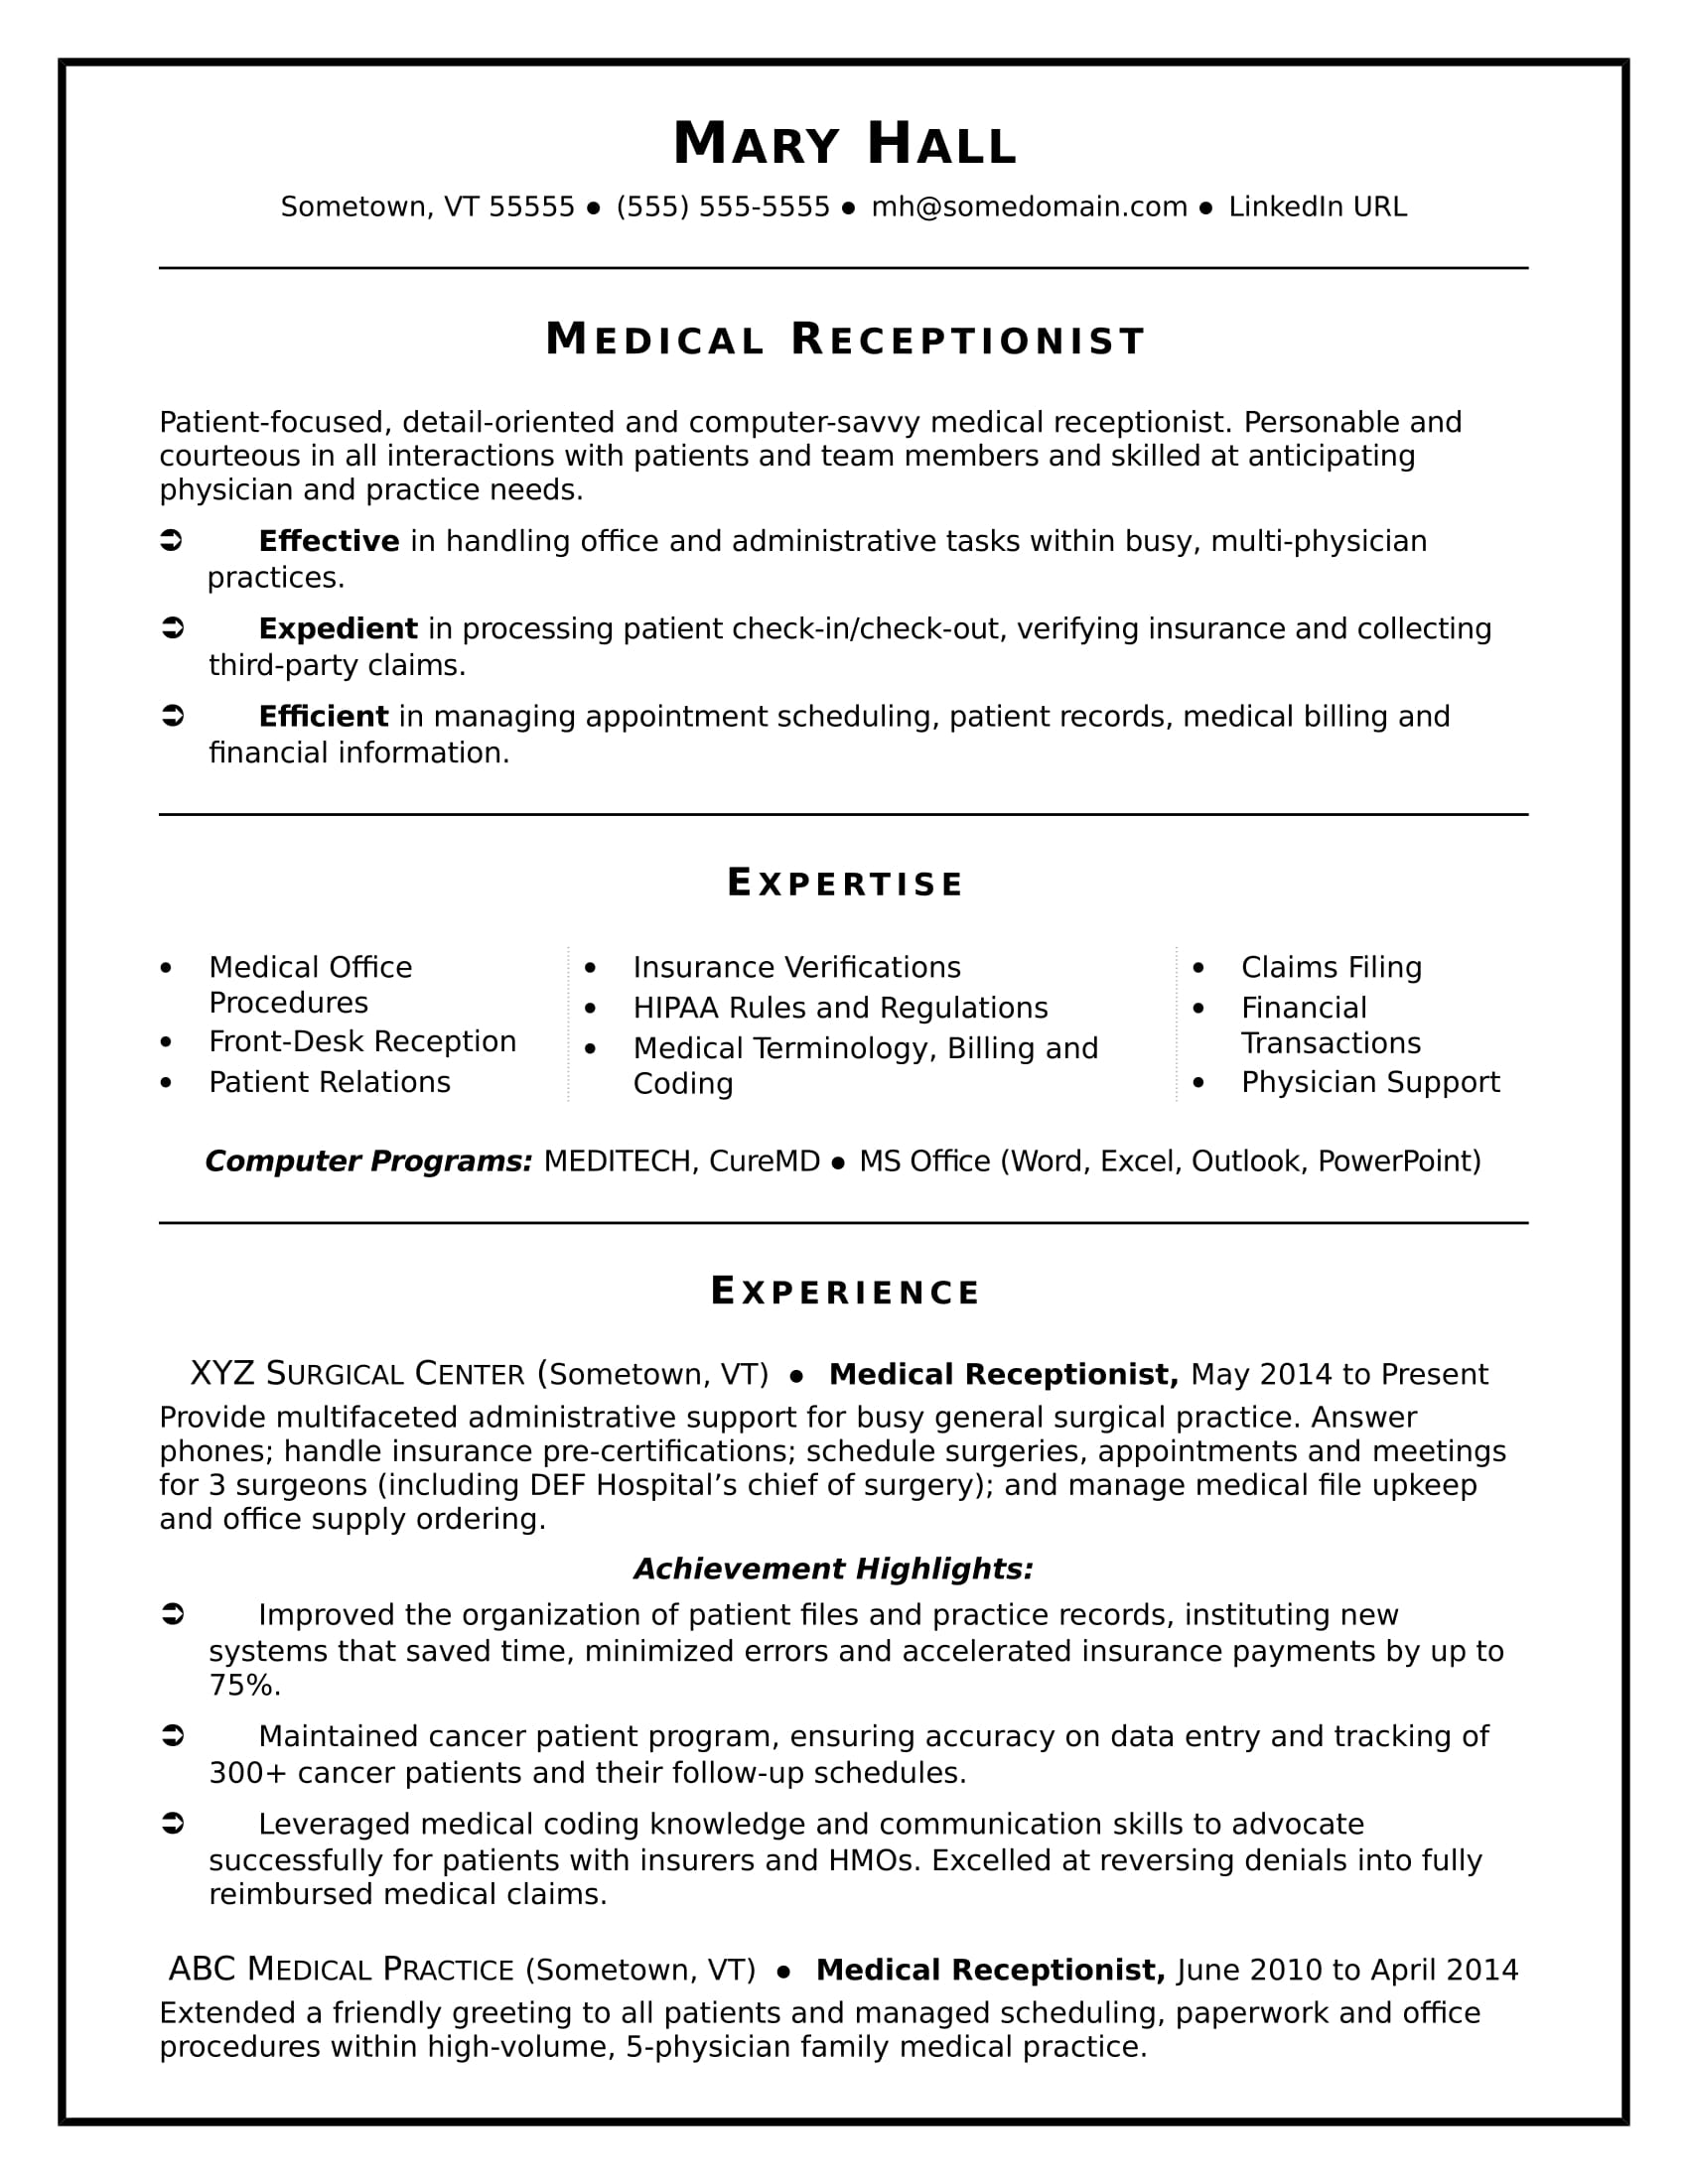 Medical Receptionist Resume Sample  Insurance Resume Examples